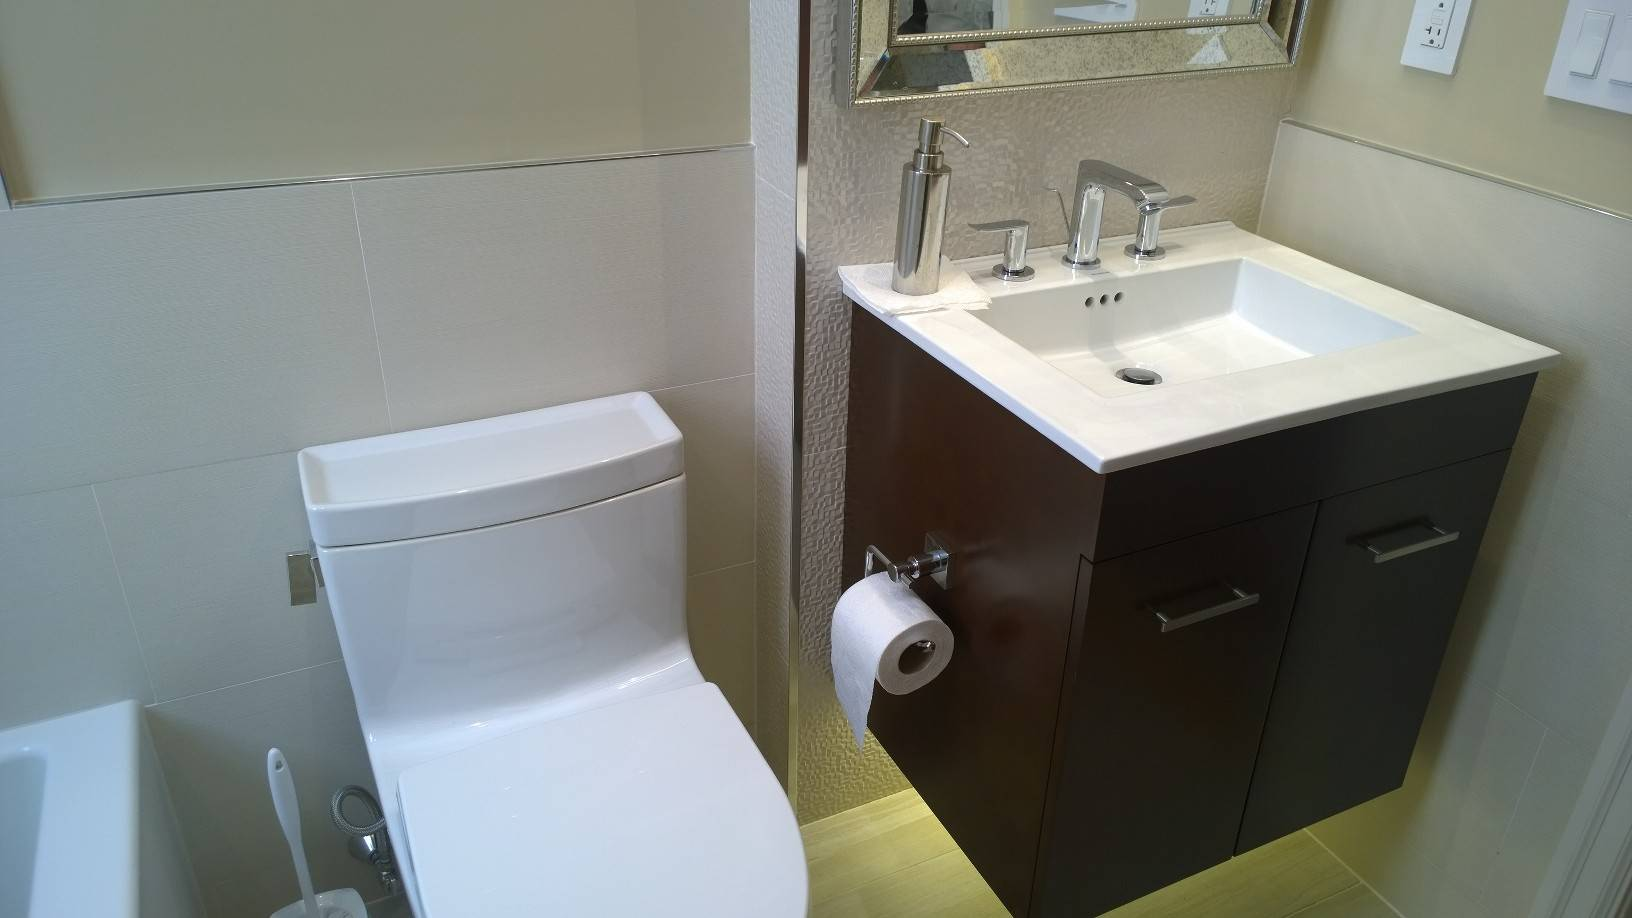 Heated Toilet and Floating Vanity